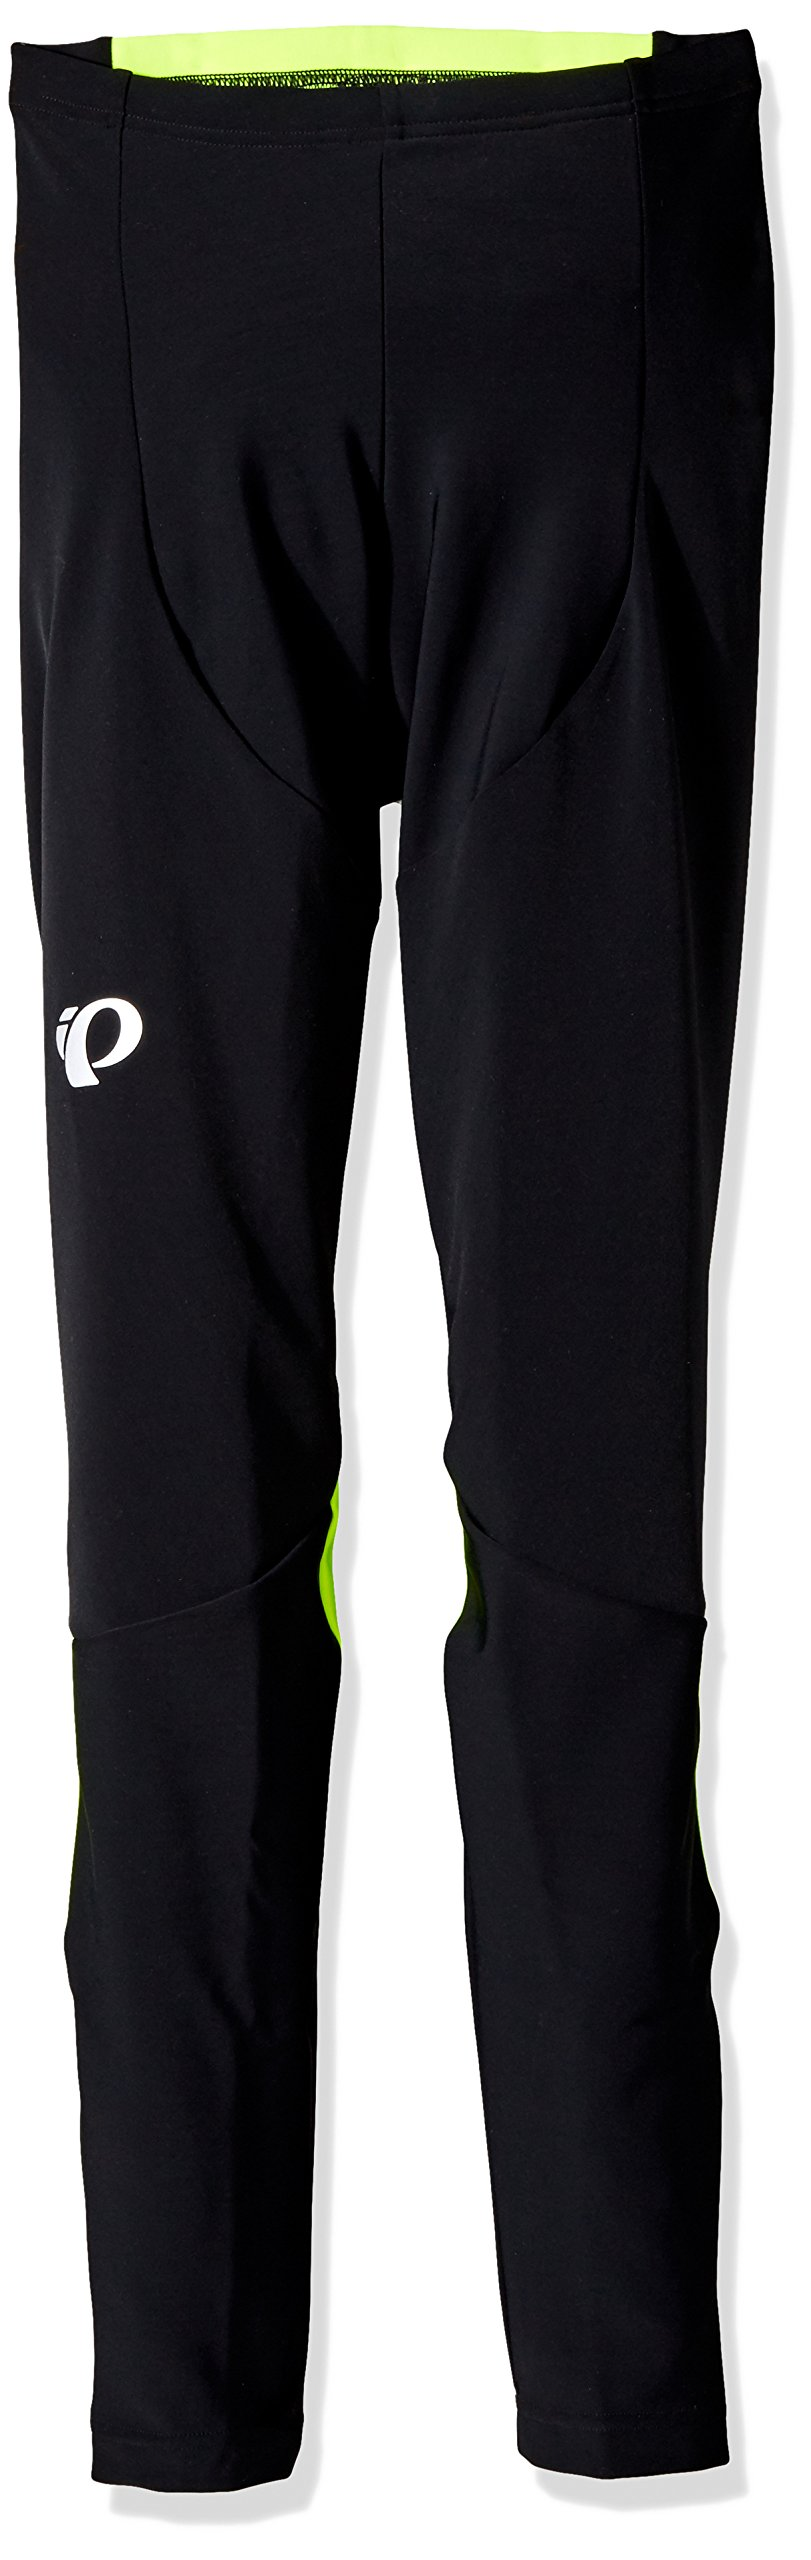 Pearl iZUMi Pursuit Thermal Tight, Black/Screaming Yellow, Large